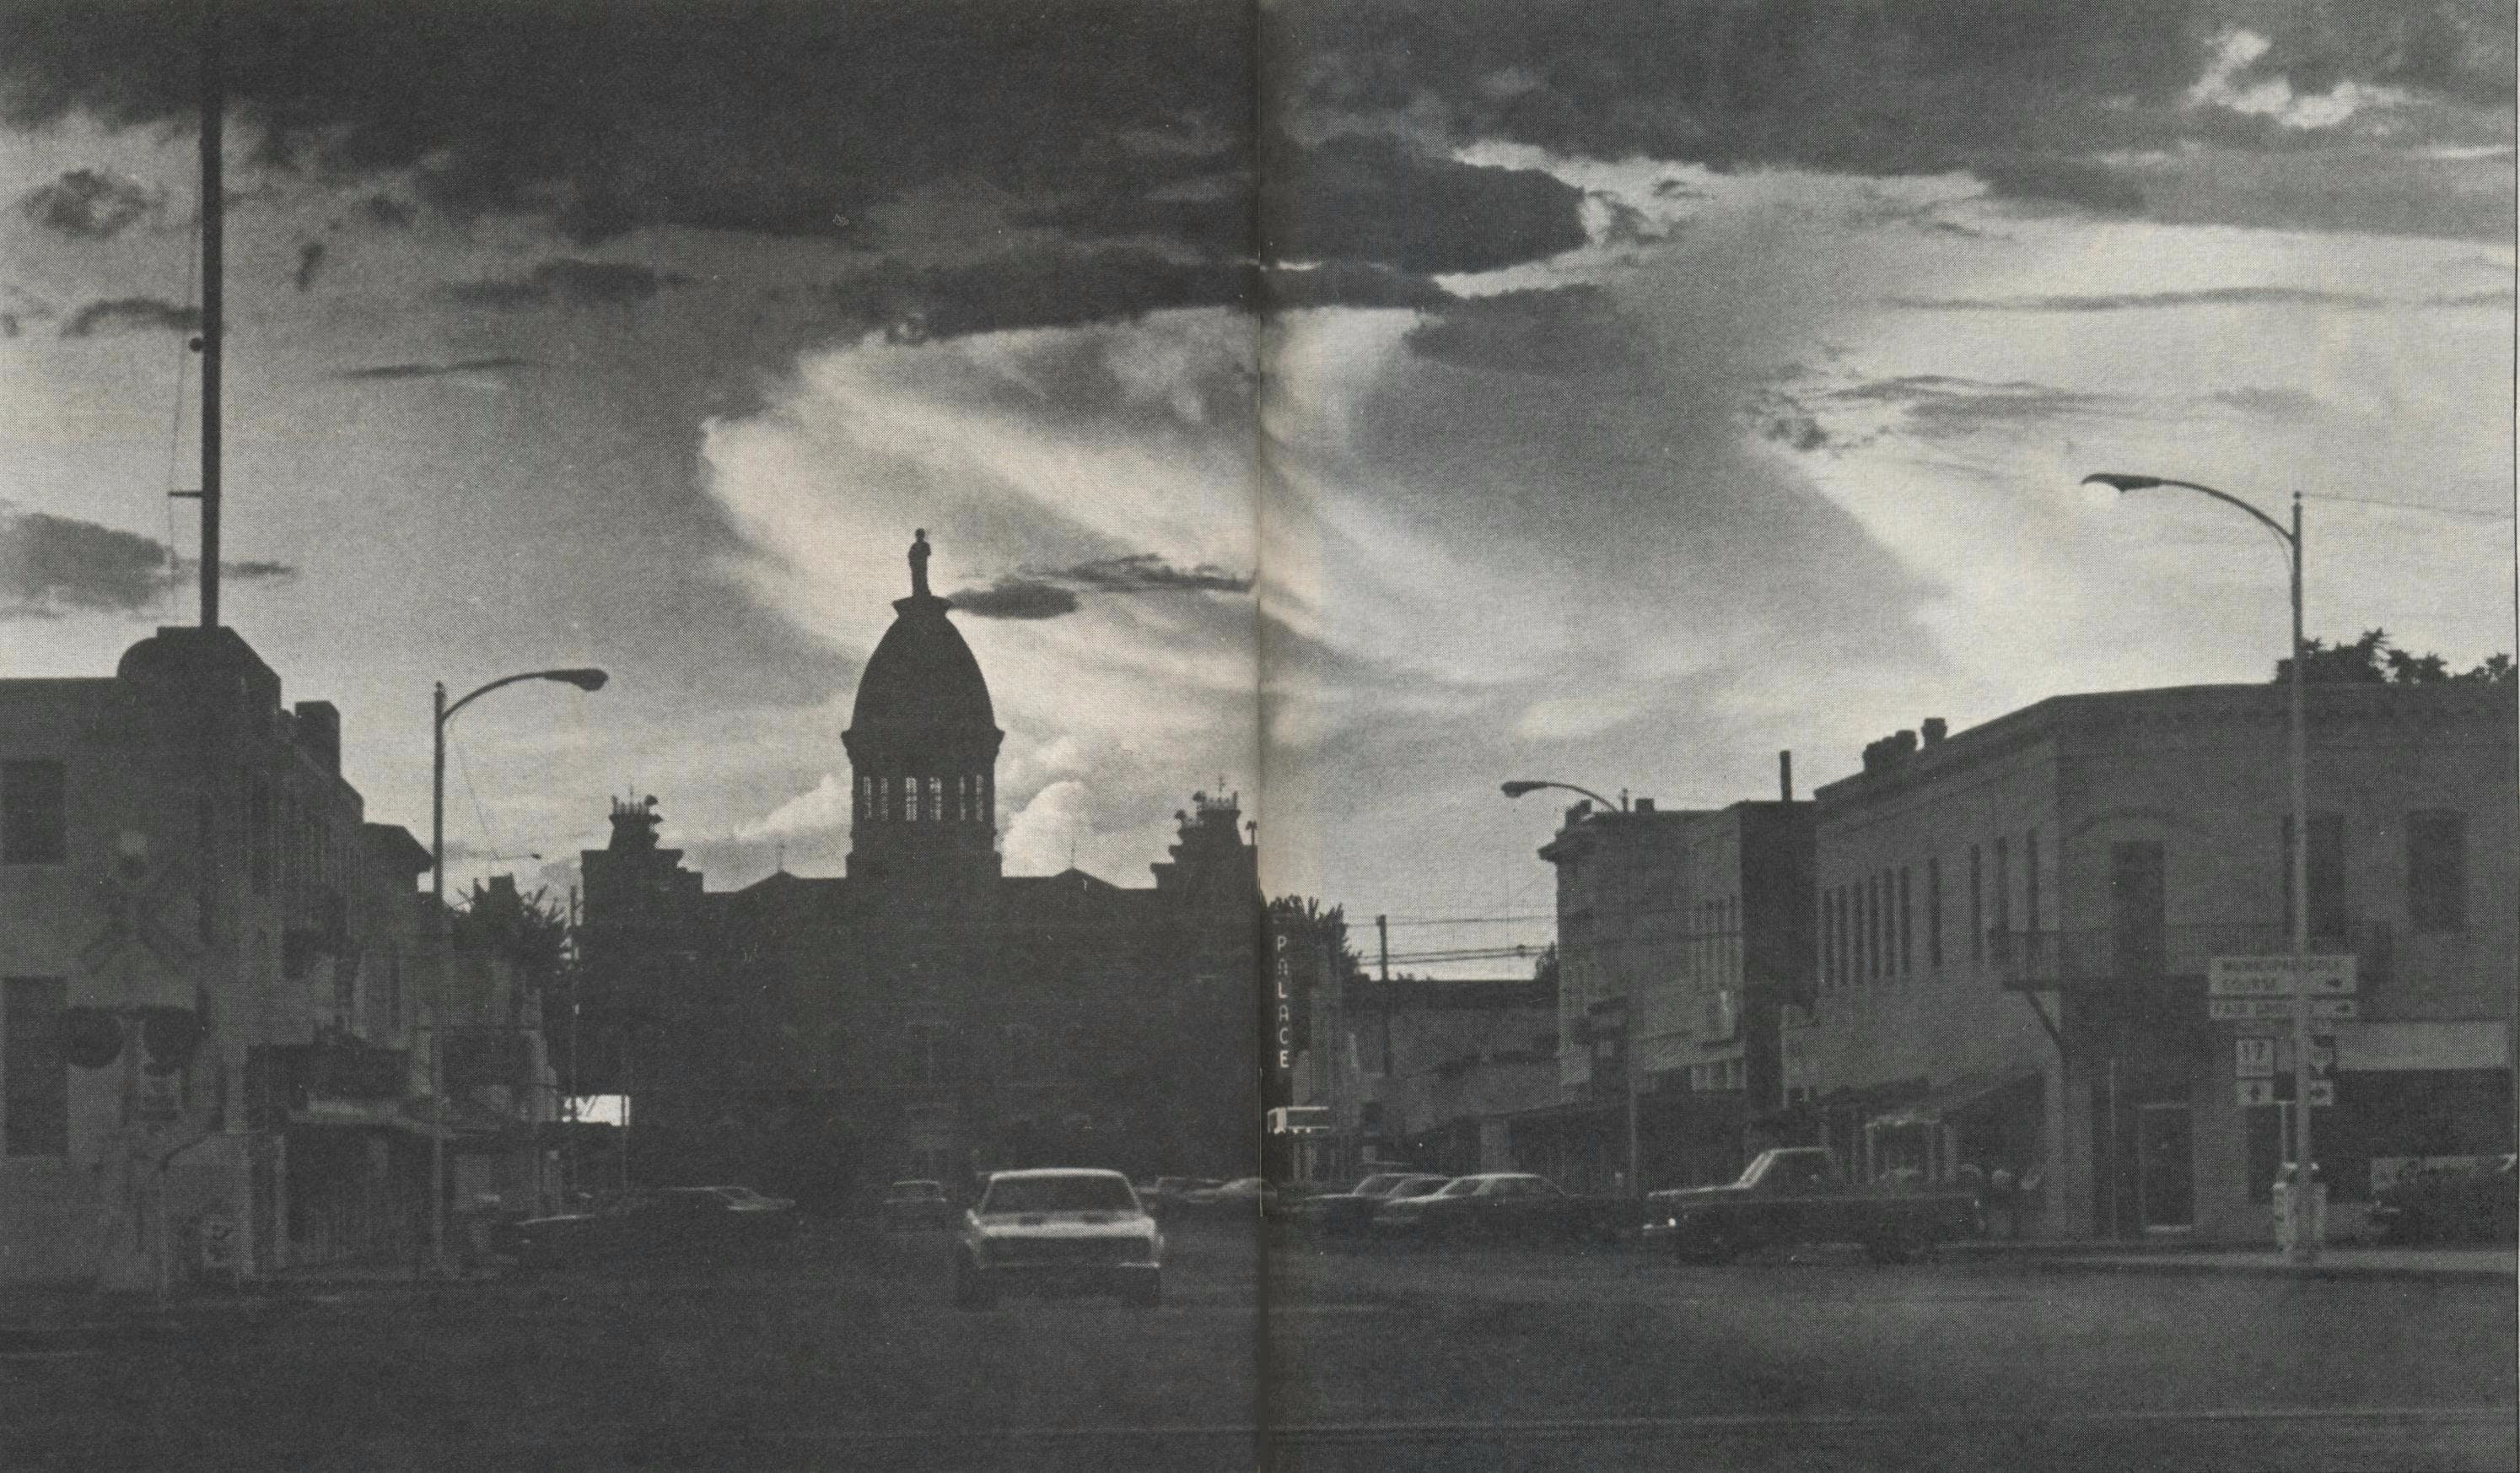 Isolated on the sparsely populated Highland Plain, Marfa remains today, as it has been for a hundred years, the center of commerce for the ranches of Presidio County.